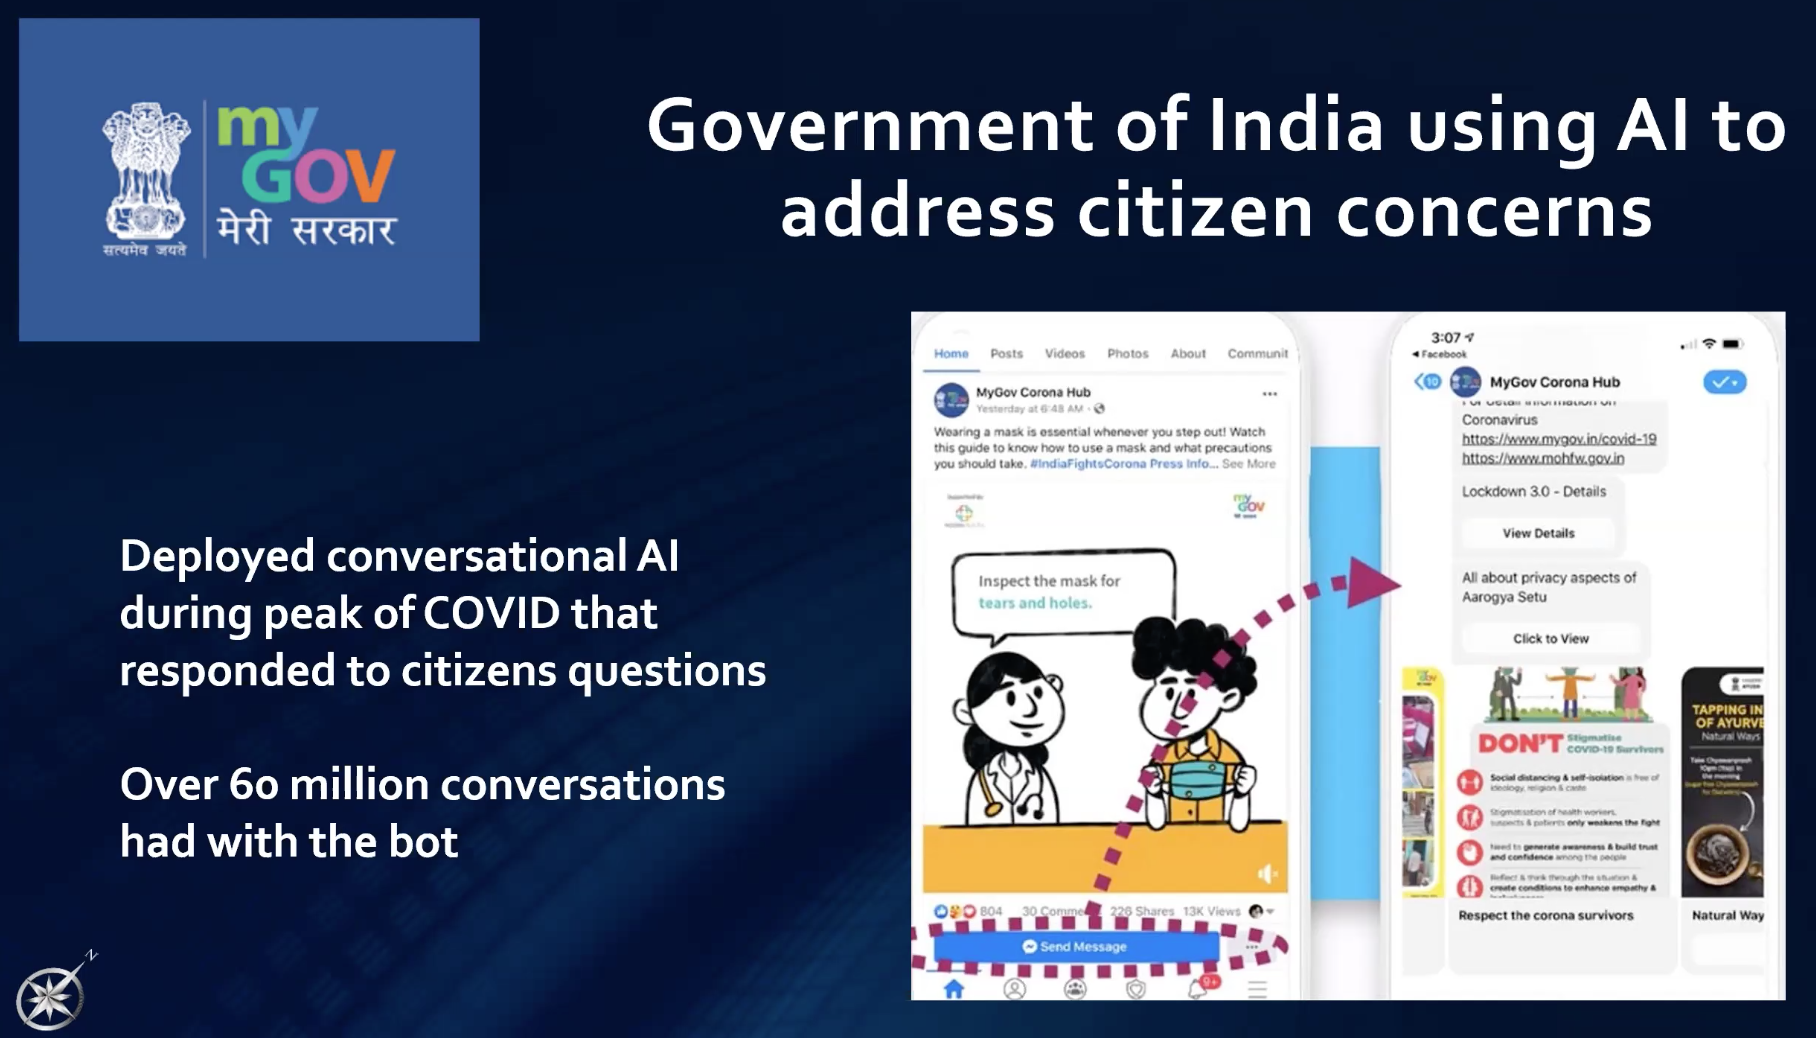 Image showing how the Indian government used conversational AI during the pandemic.